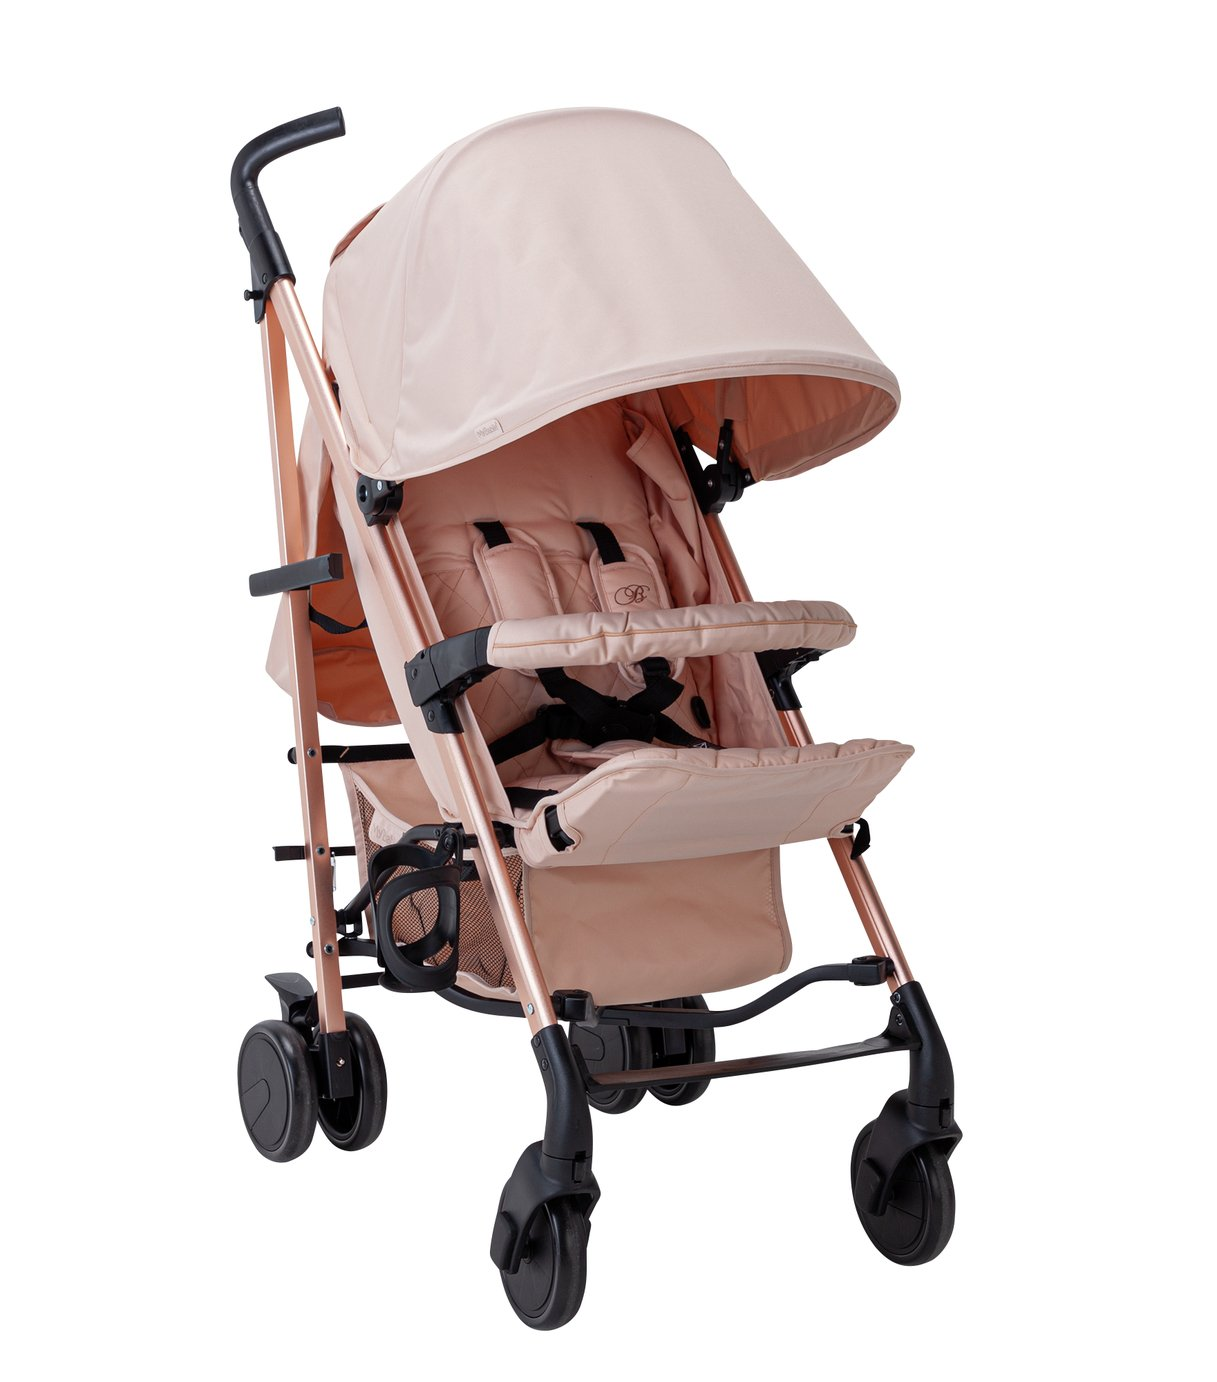 My Babiie Billie Faiers MB51 Stroller - Rose & Blush